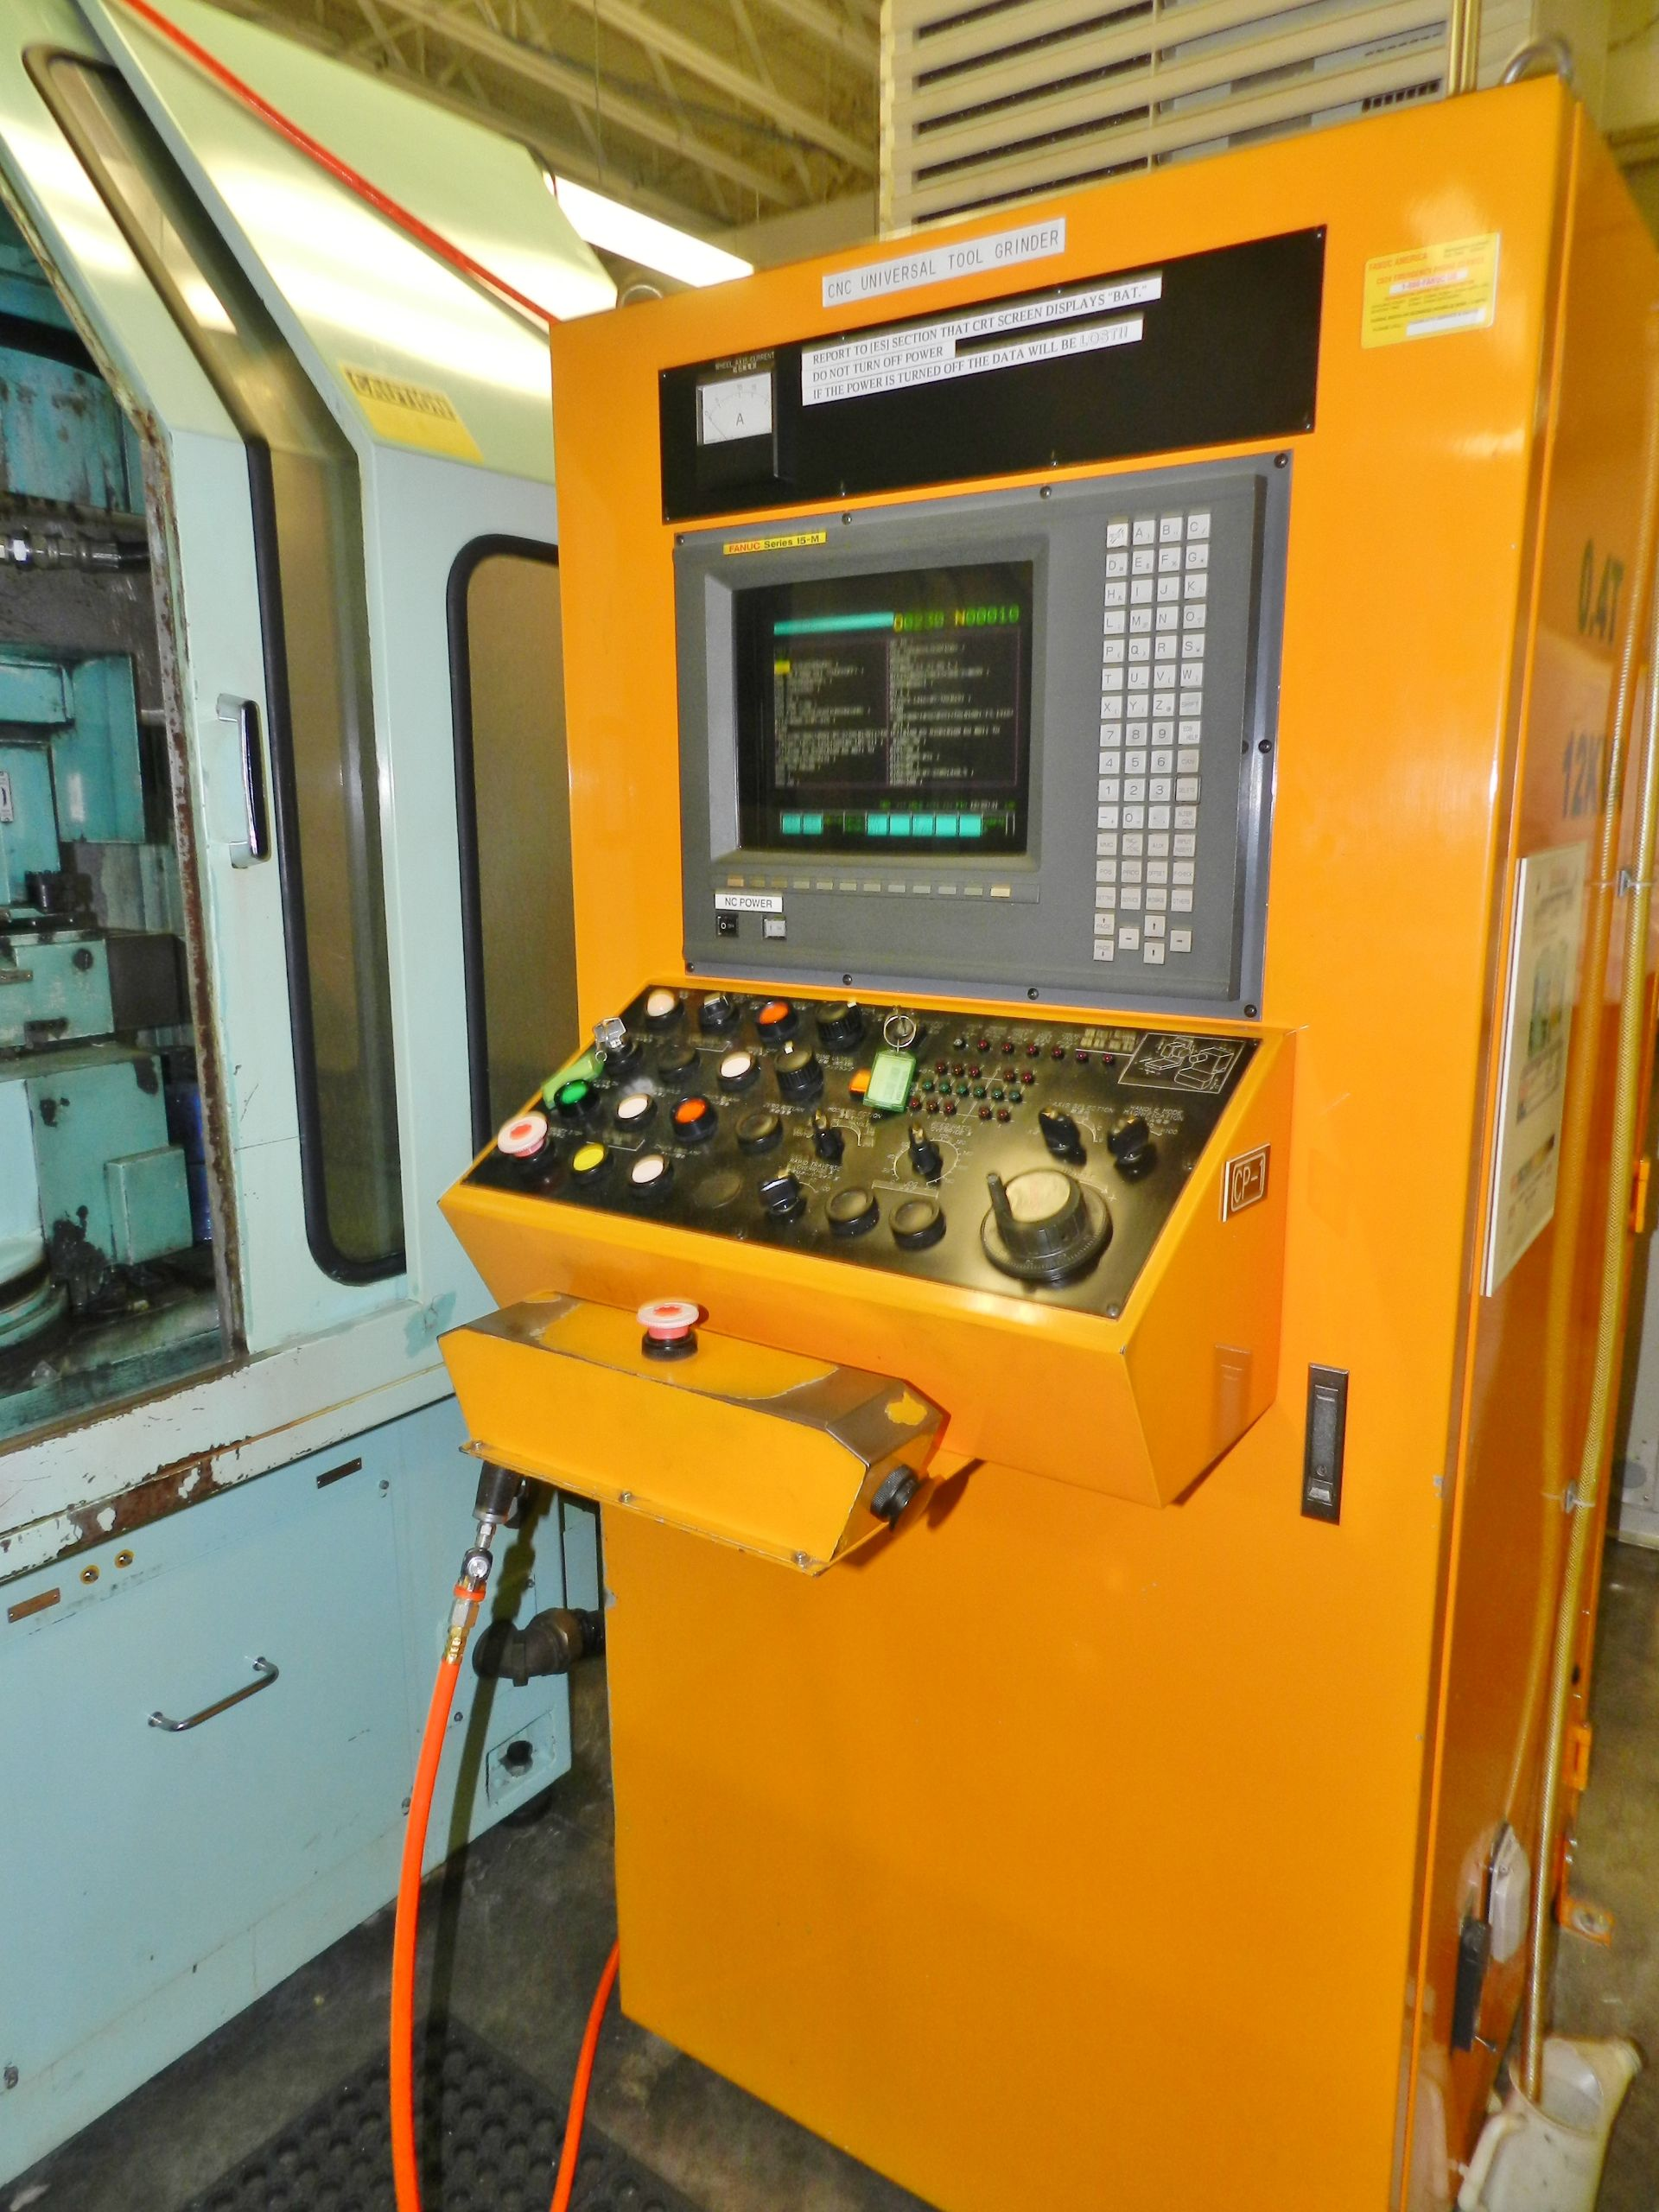 Lot 38 - UTSUNOMIYA SEISAKUSHO Co 6 Axis CNC Tool Cutter Machine UTG150-15M Fanuc Control